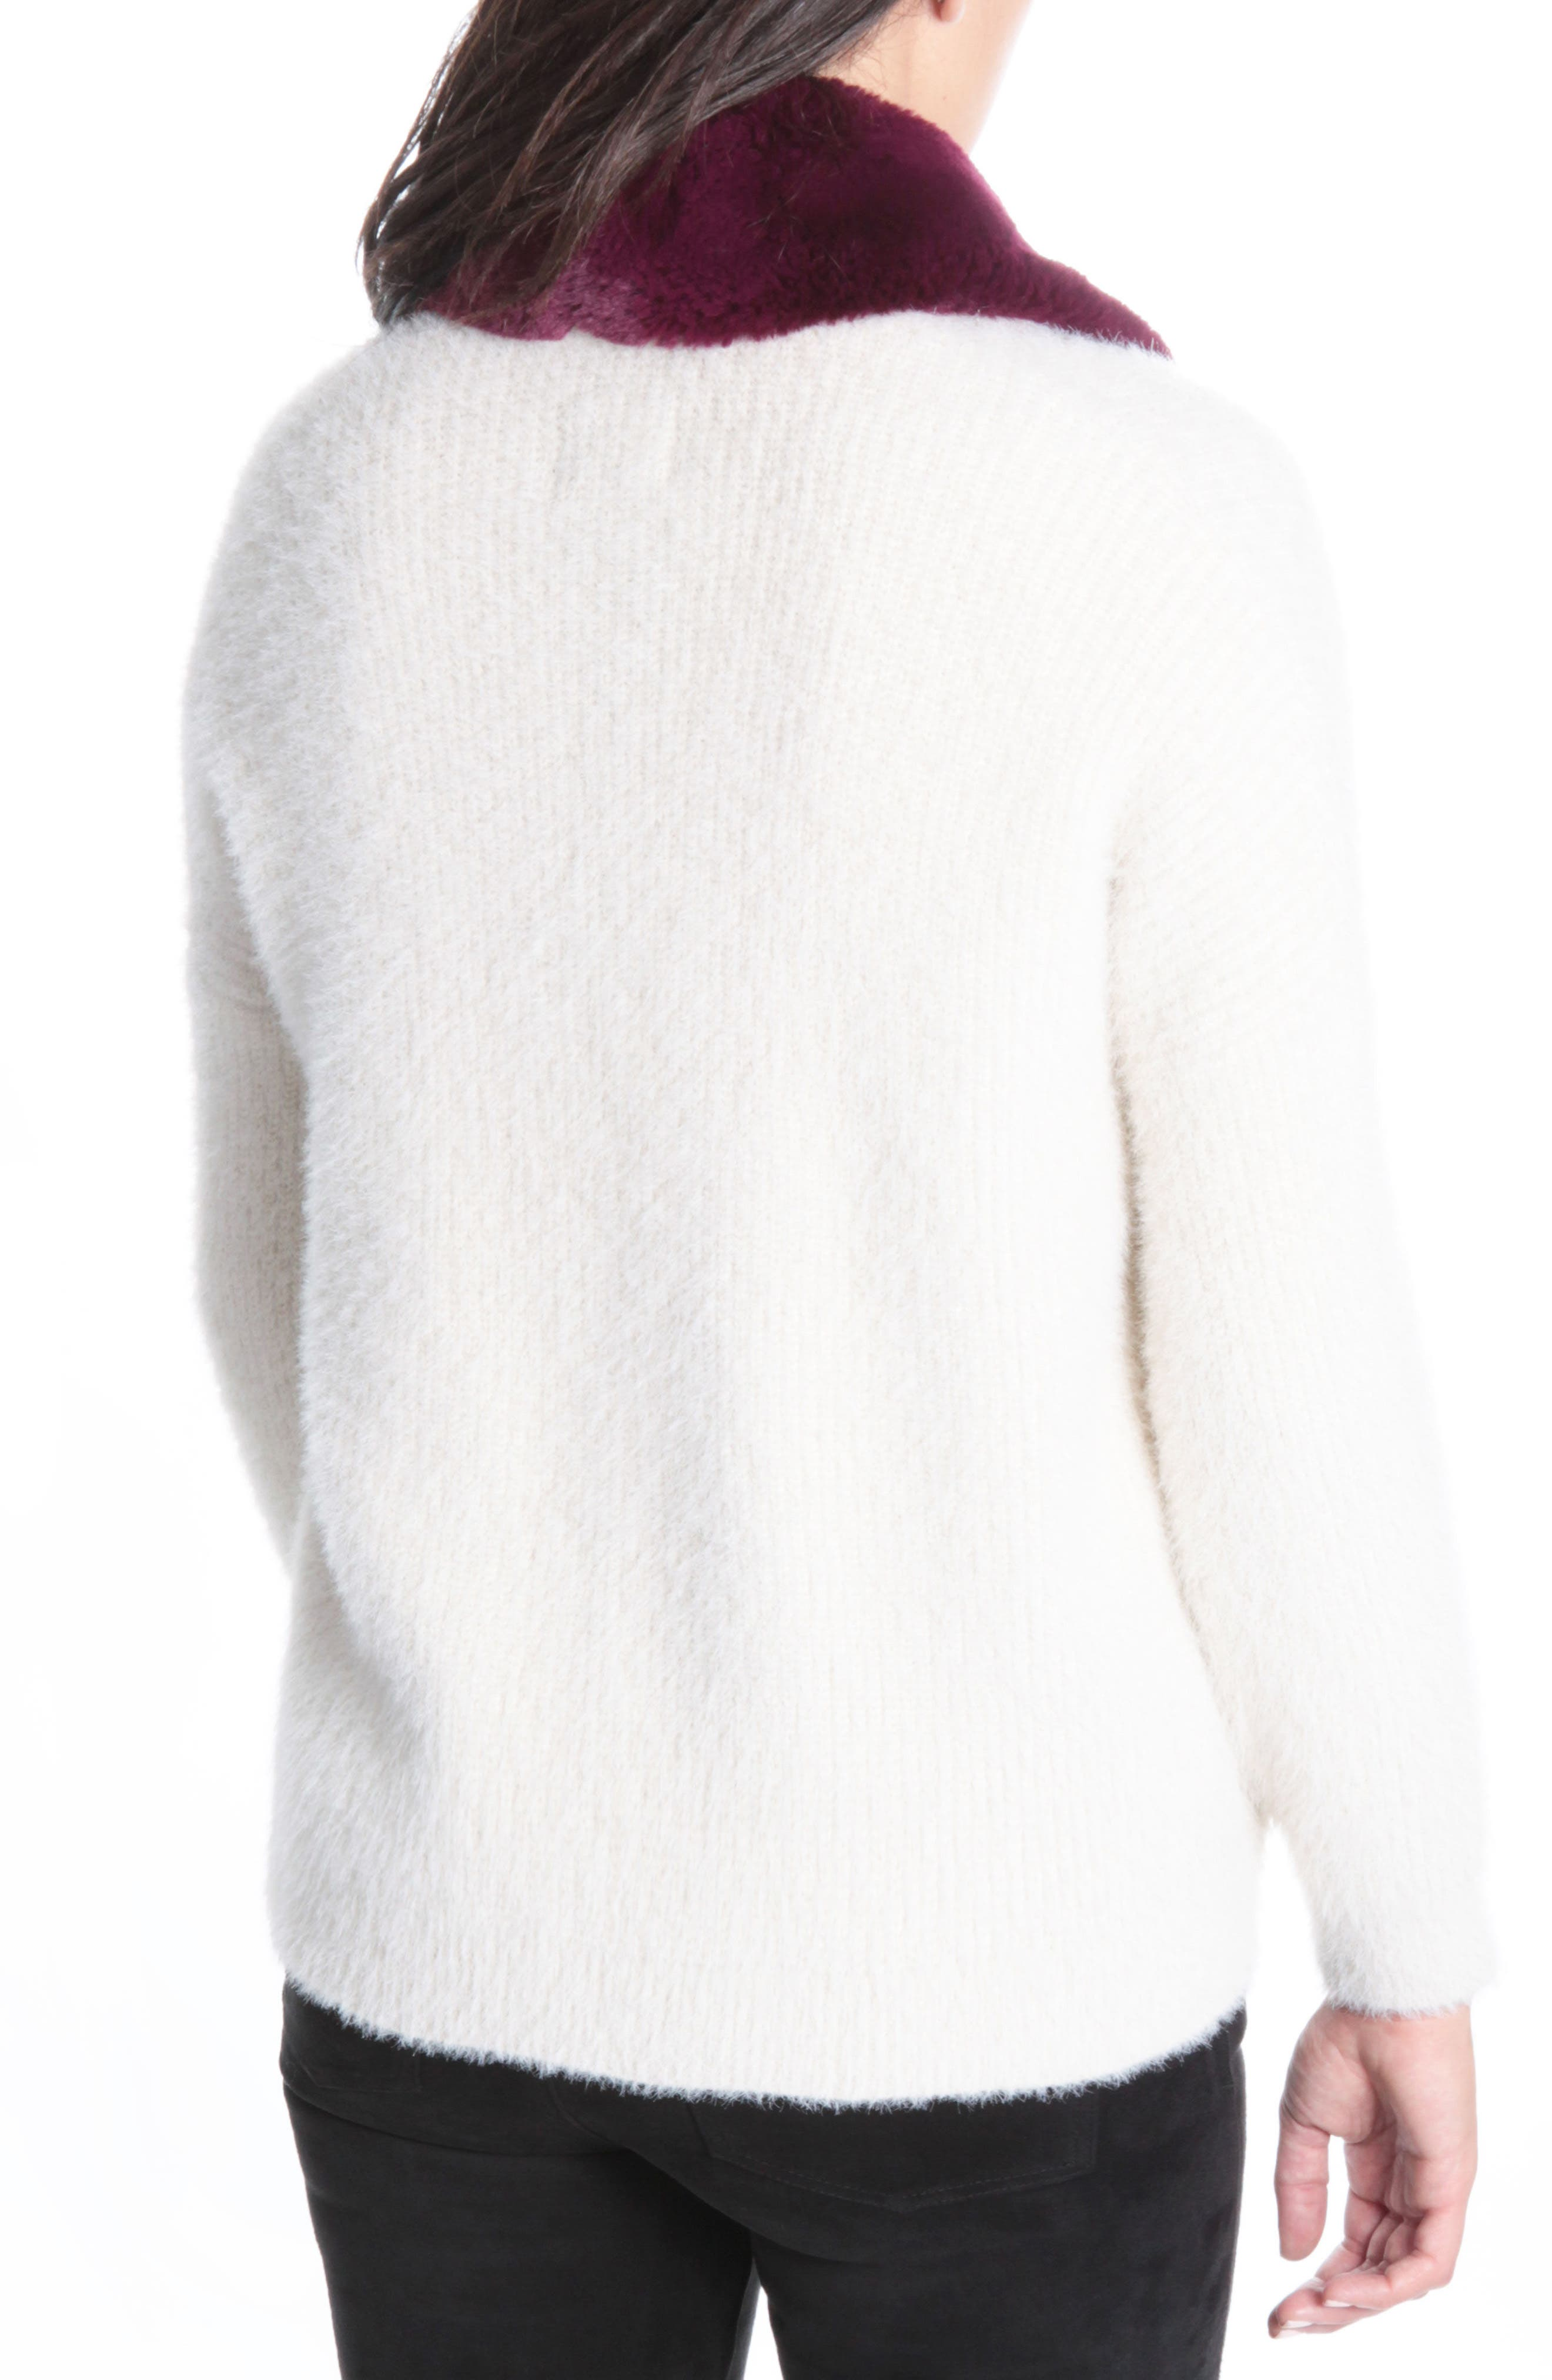 Fredrica Faux Fur Collar Knit Sweater,                             Alternate thumbnail 2, color,                             907